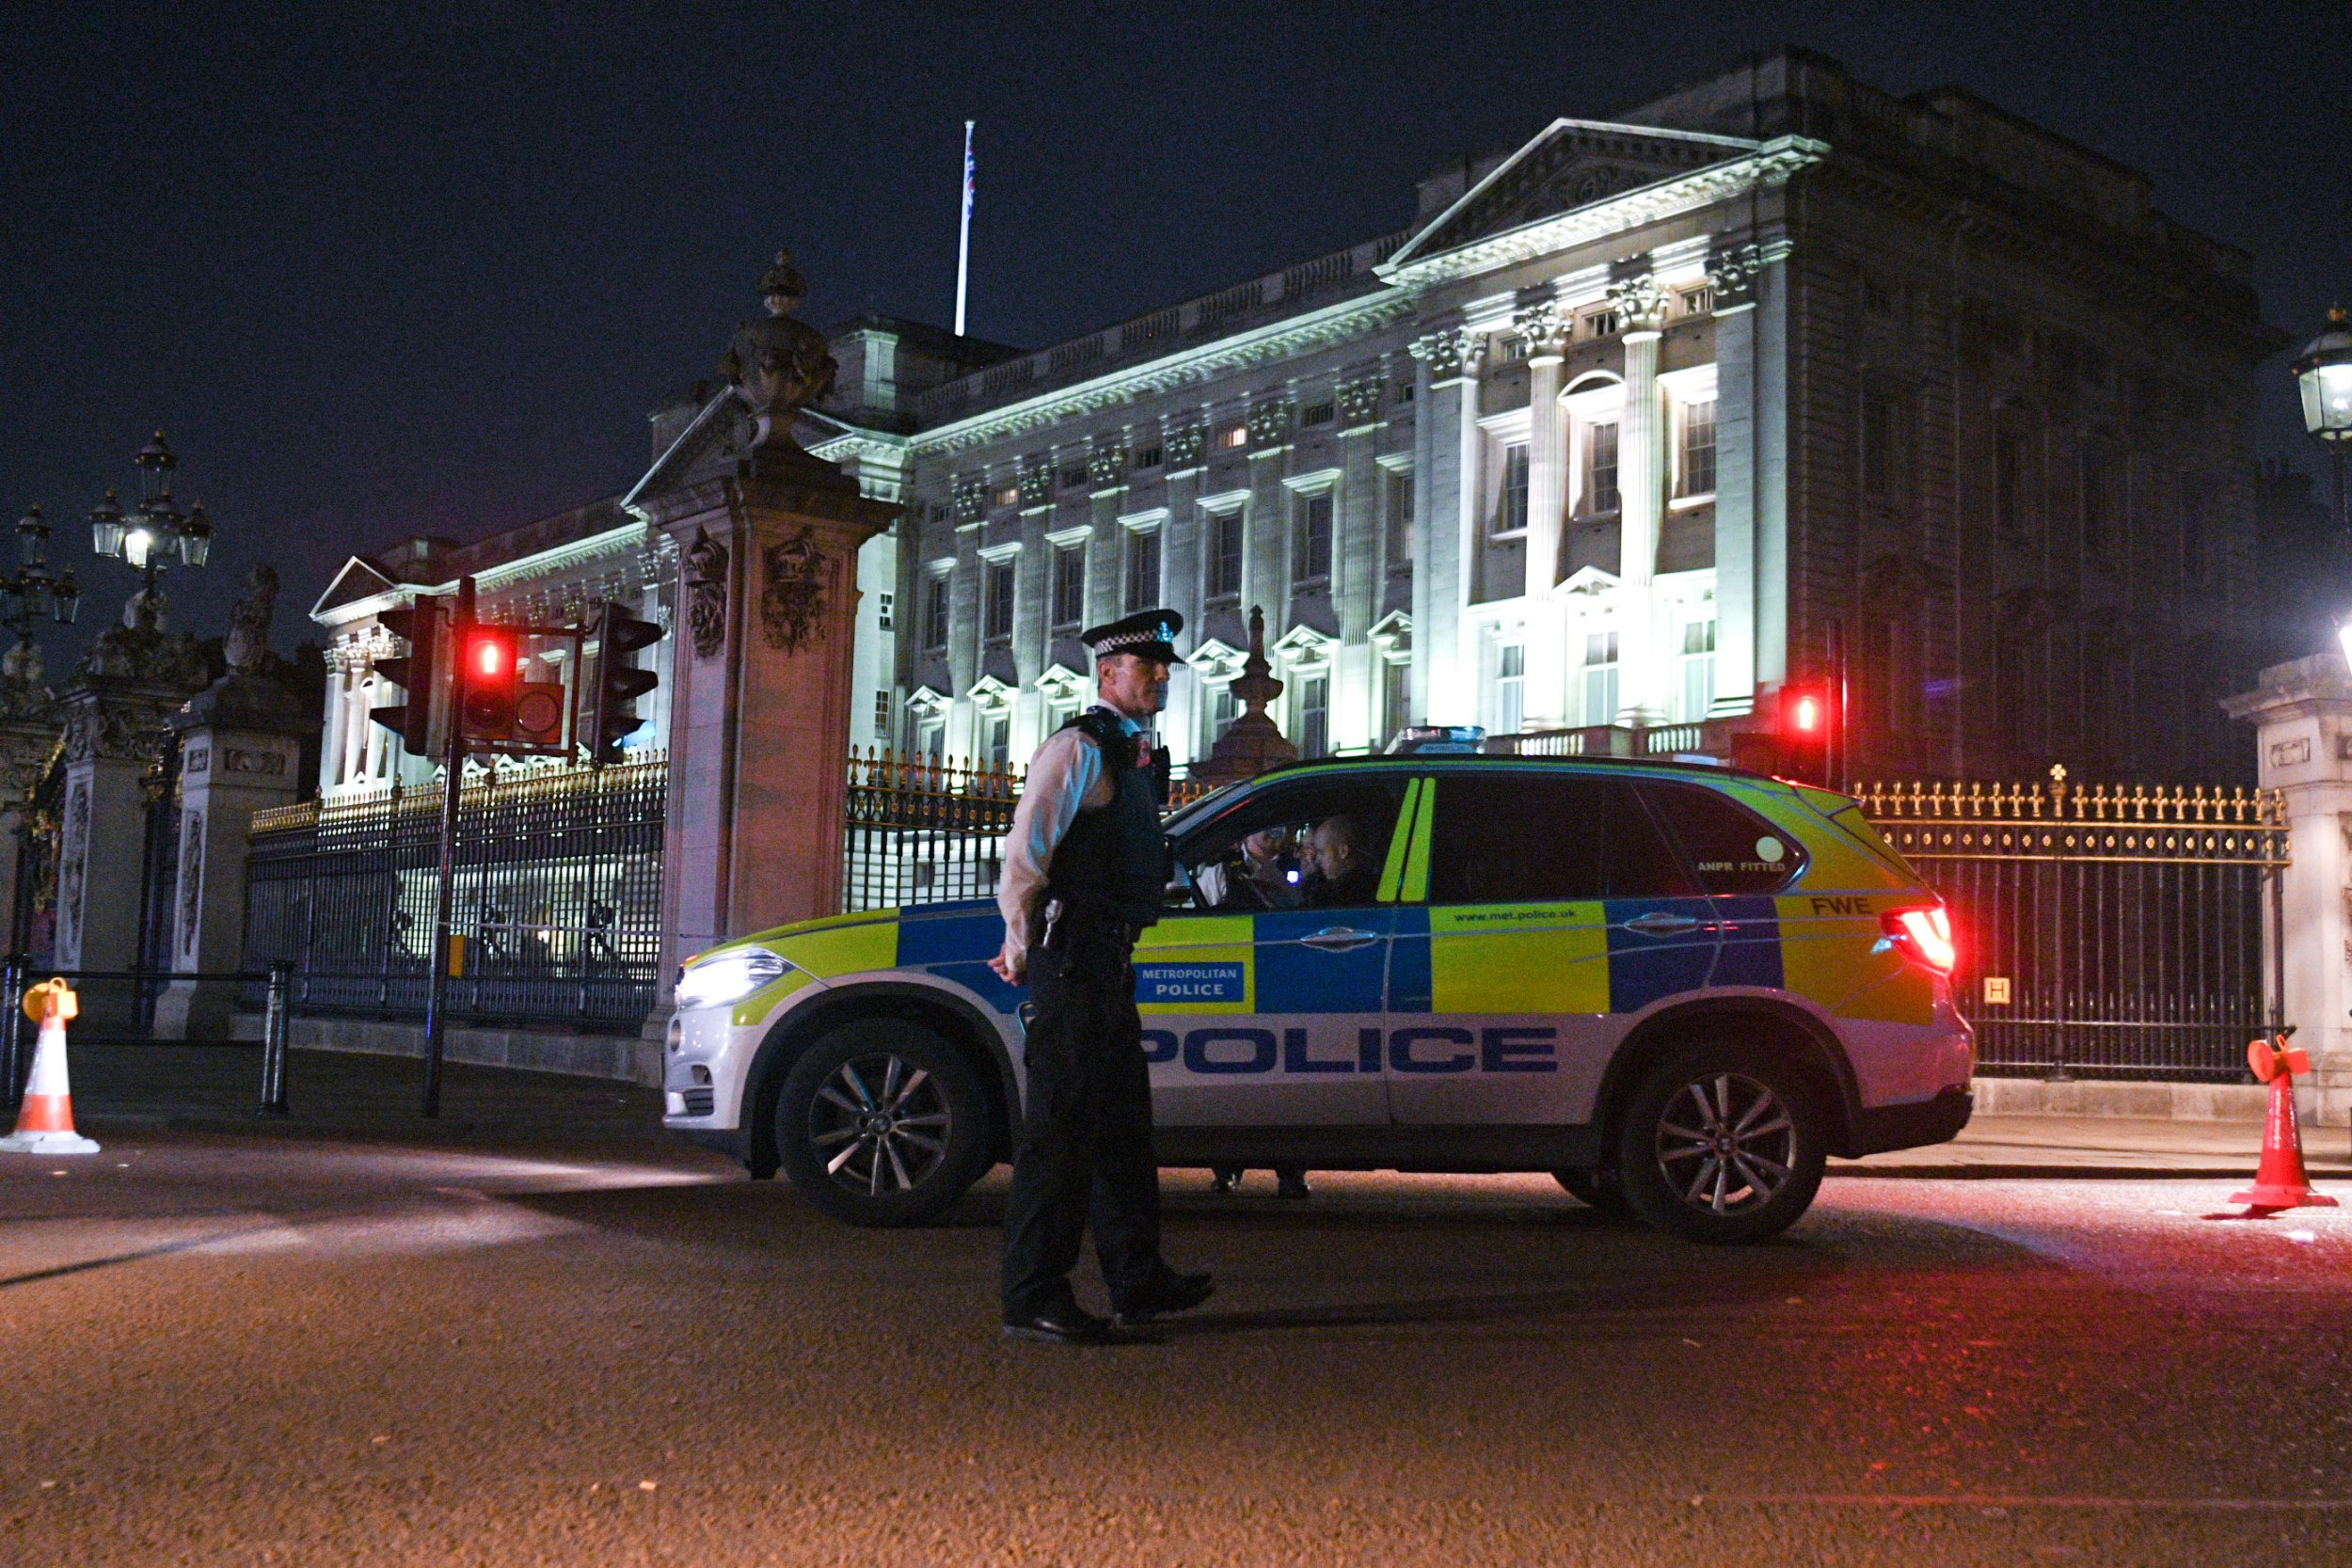 LONDON, ENGLAND - AUGUST 25: Police teams secure the roads behind a cordoned area following an apparent attack on two police officers at Buckingham Palace on August 25, 2017 in London, England. Two officers were slightly injured while arresting the man who was carrying a bladed weapon. (Photo by GOR/Getty Images)